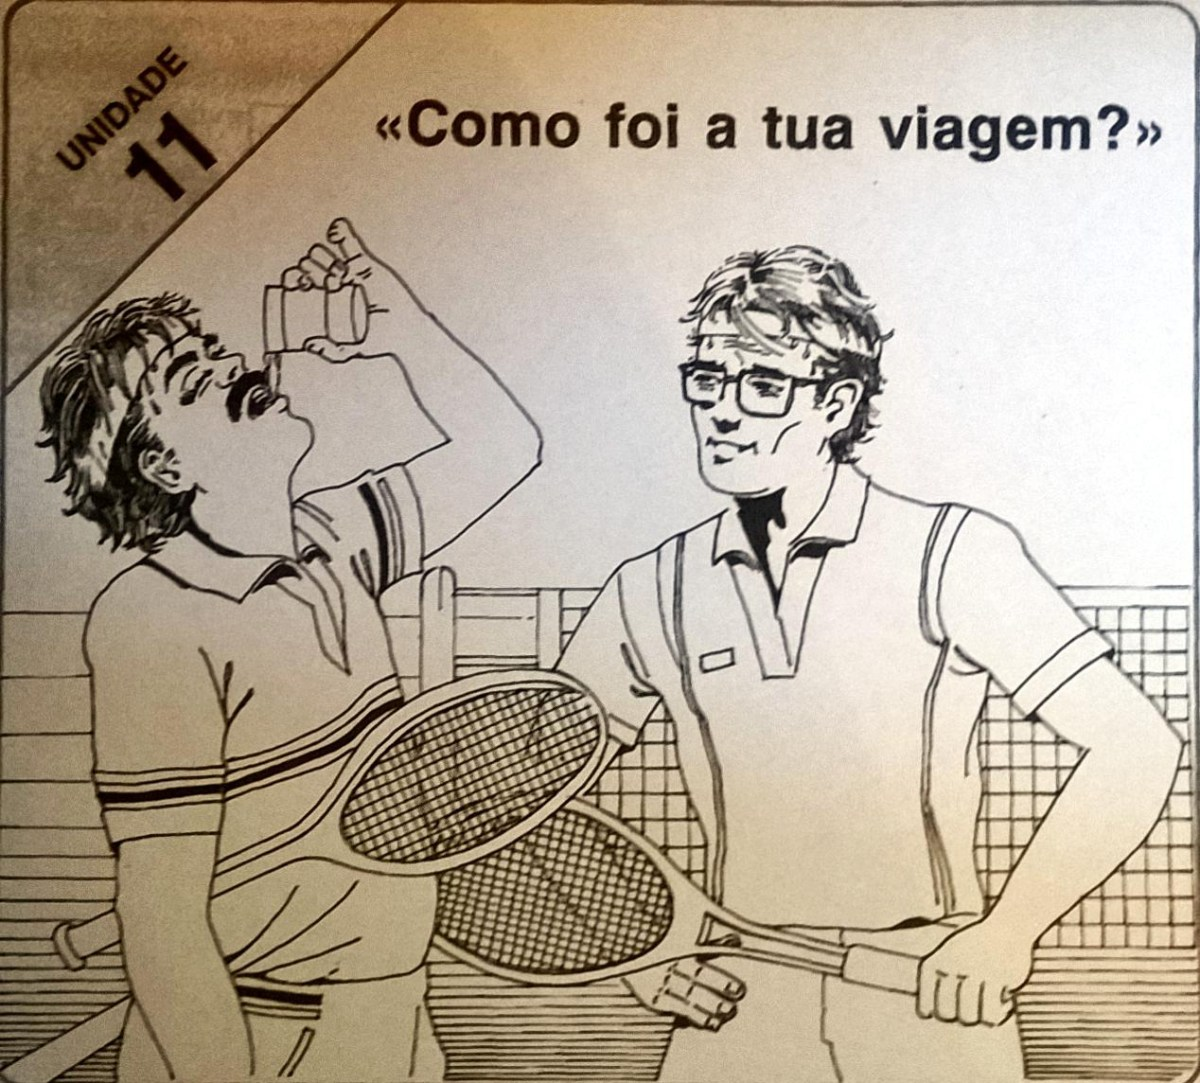 Ancient Portuguese language text book image - 300dpi